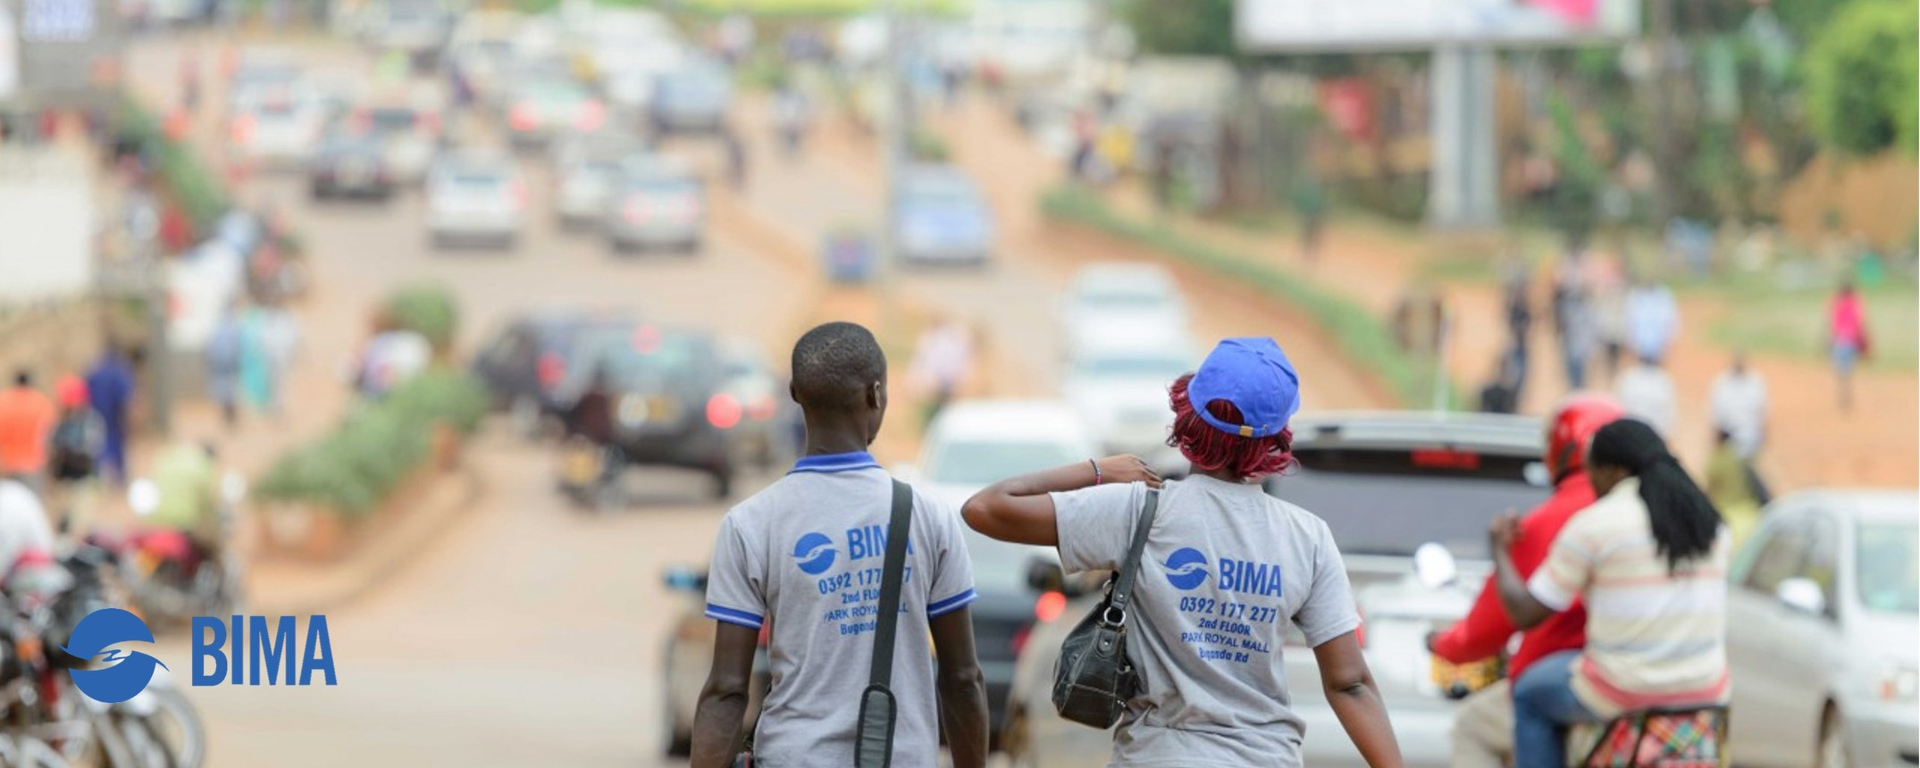 BIMA - Finance Manager Movemeback African opportunity cover image